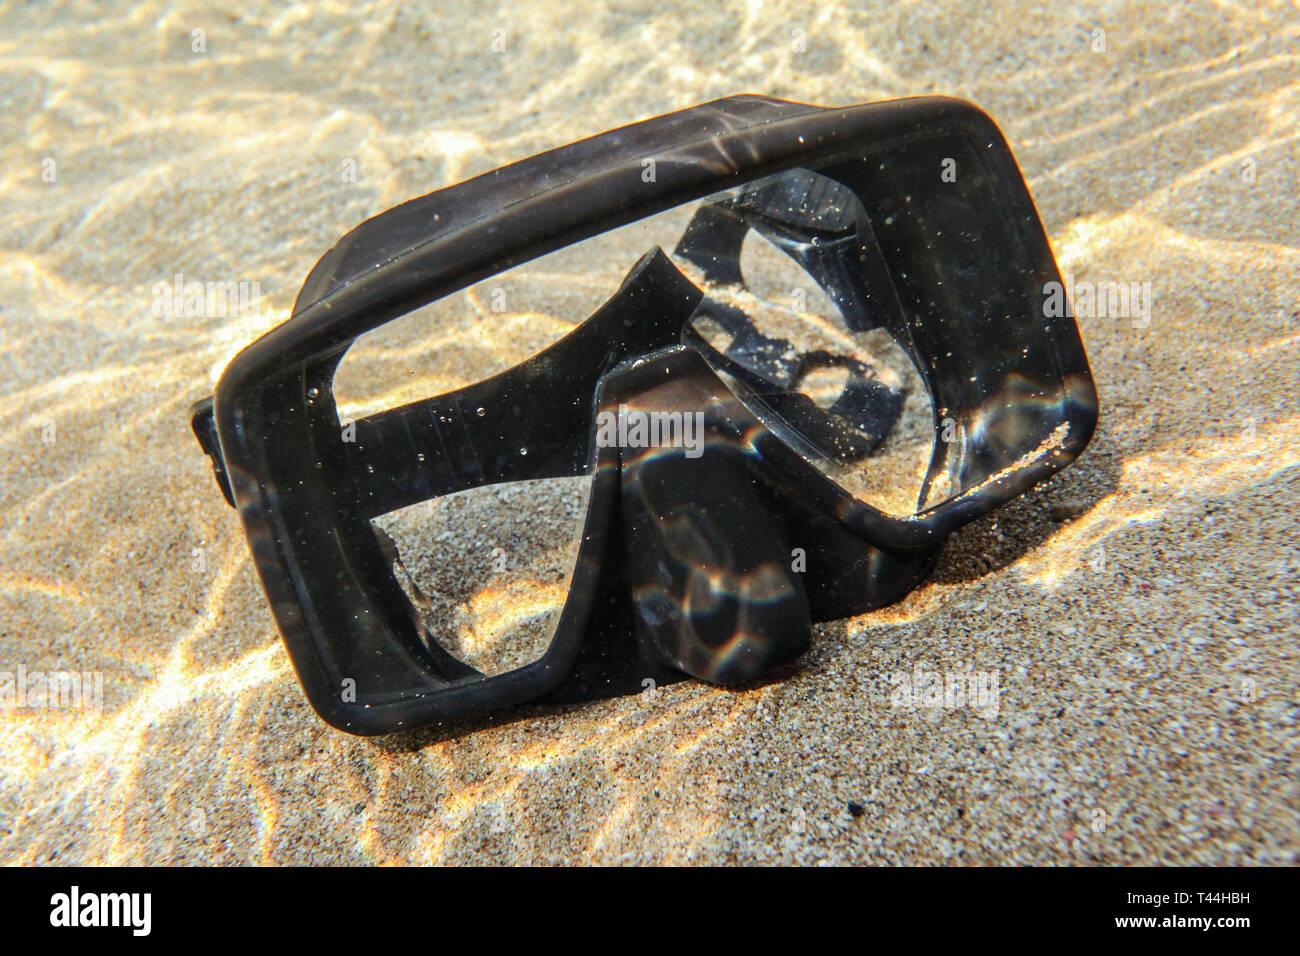 Underwater photo - sun shining to rubber black diving mask on sand in shallow water. Stock Photo